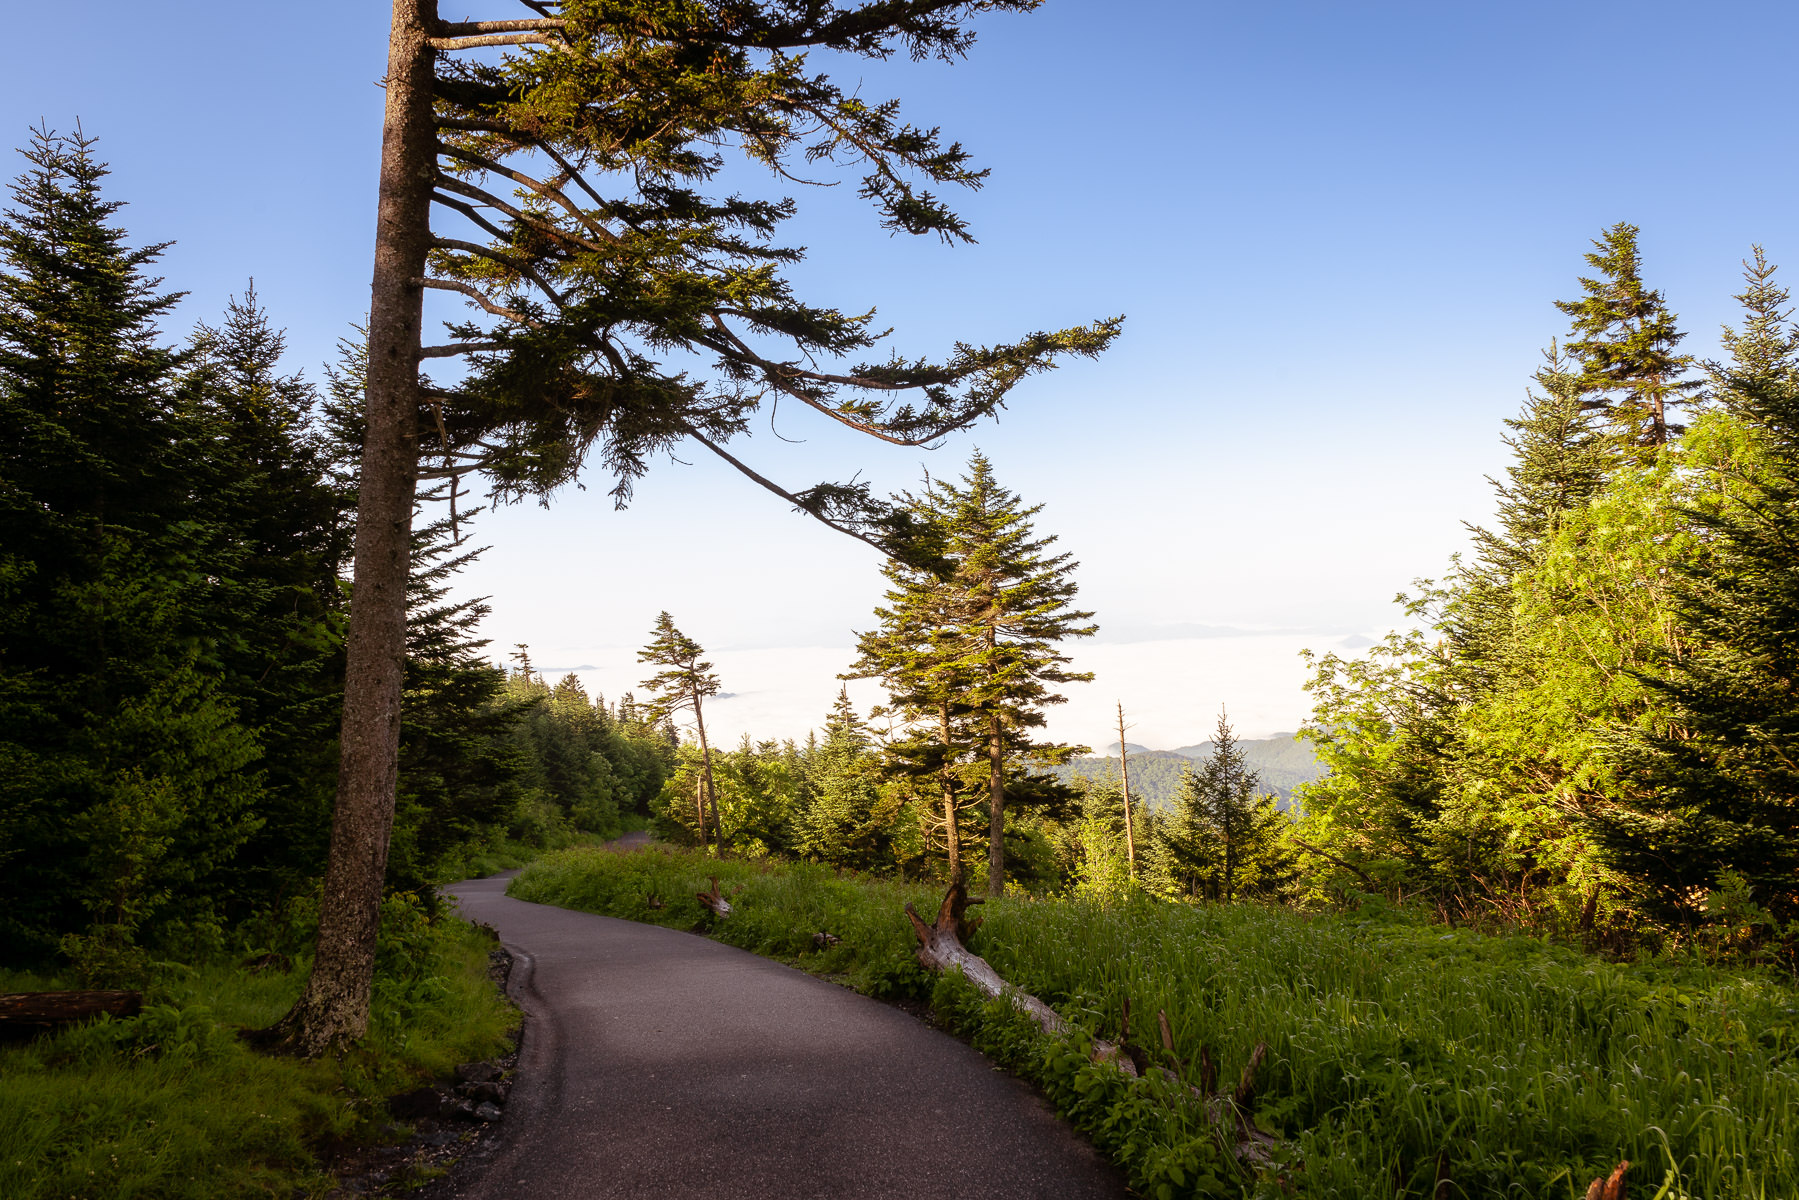 A path winds through the forest from the peak of the Great Smoky Mountains National Park's Clingmans Dome.